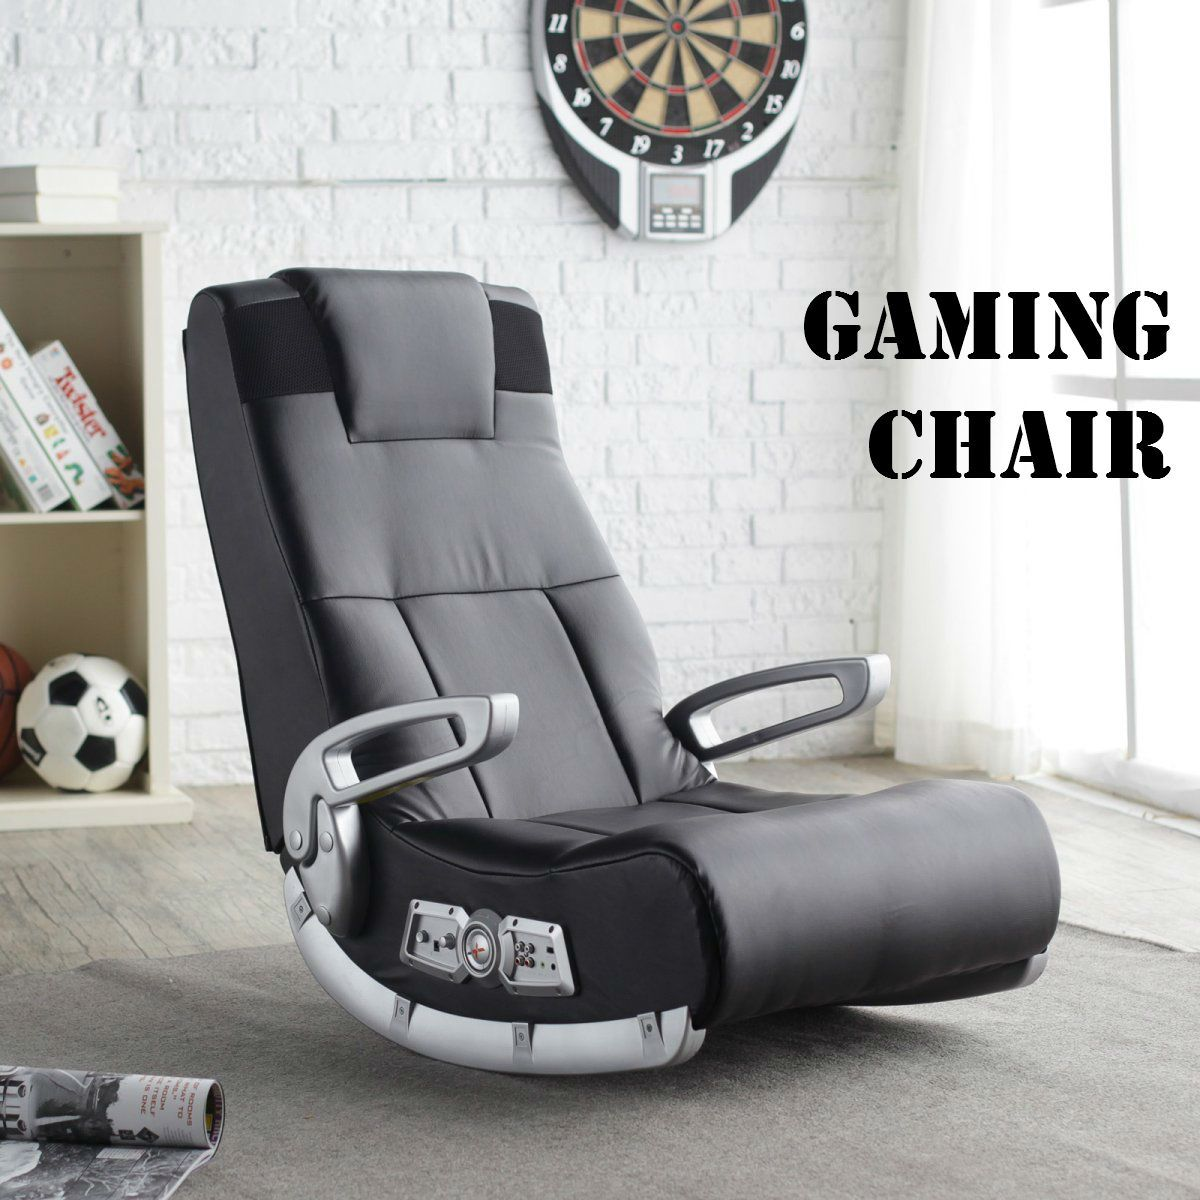 Incredible Up To 40 Off Dream Rocker Gaming Chair At Boys Stuff Caraccident5 Cool Chair Designs And Ideas Caraccident5Info